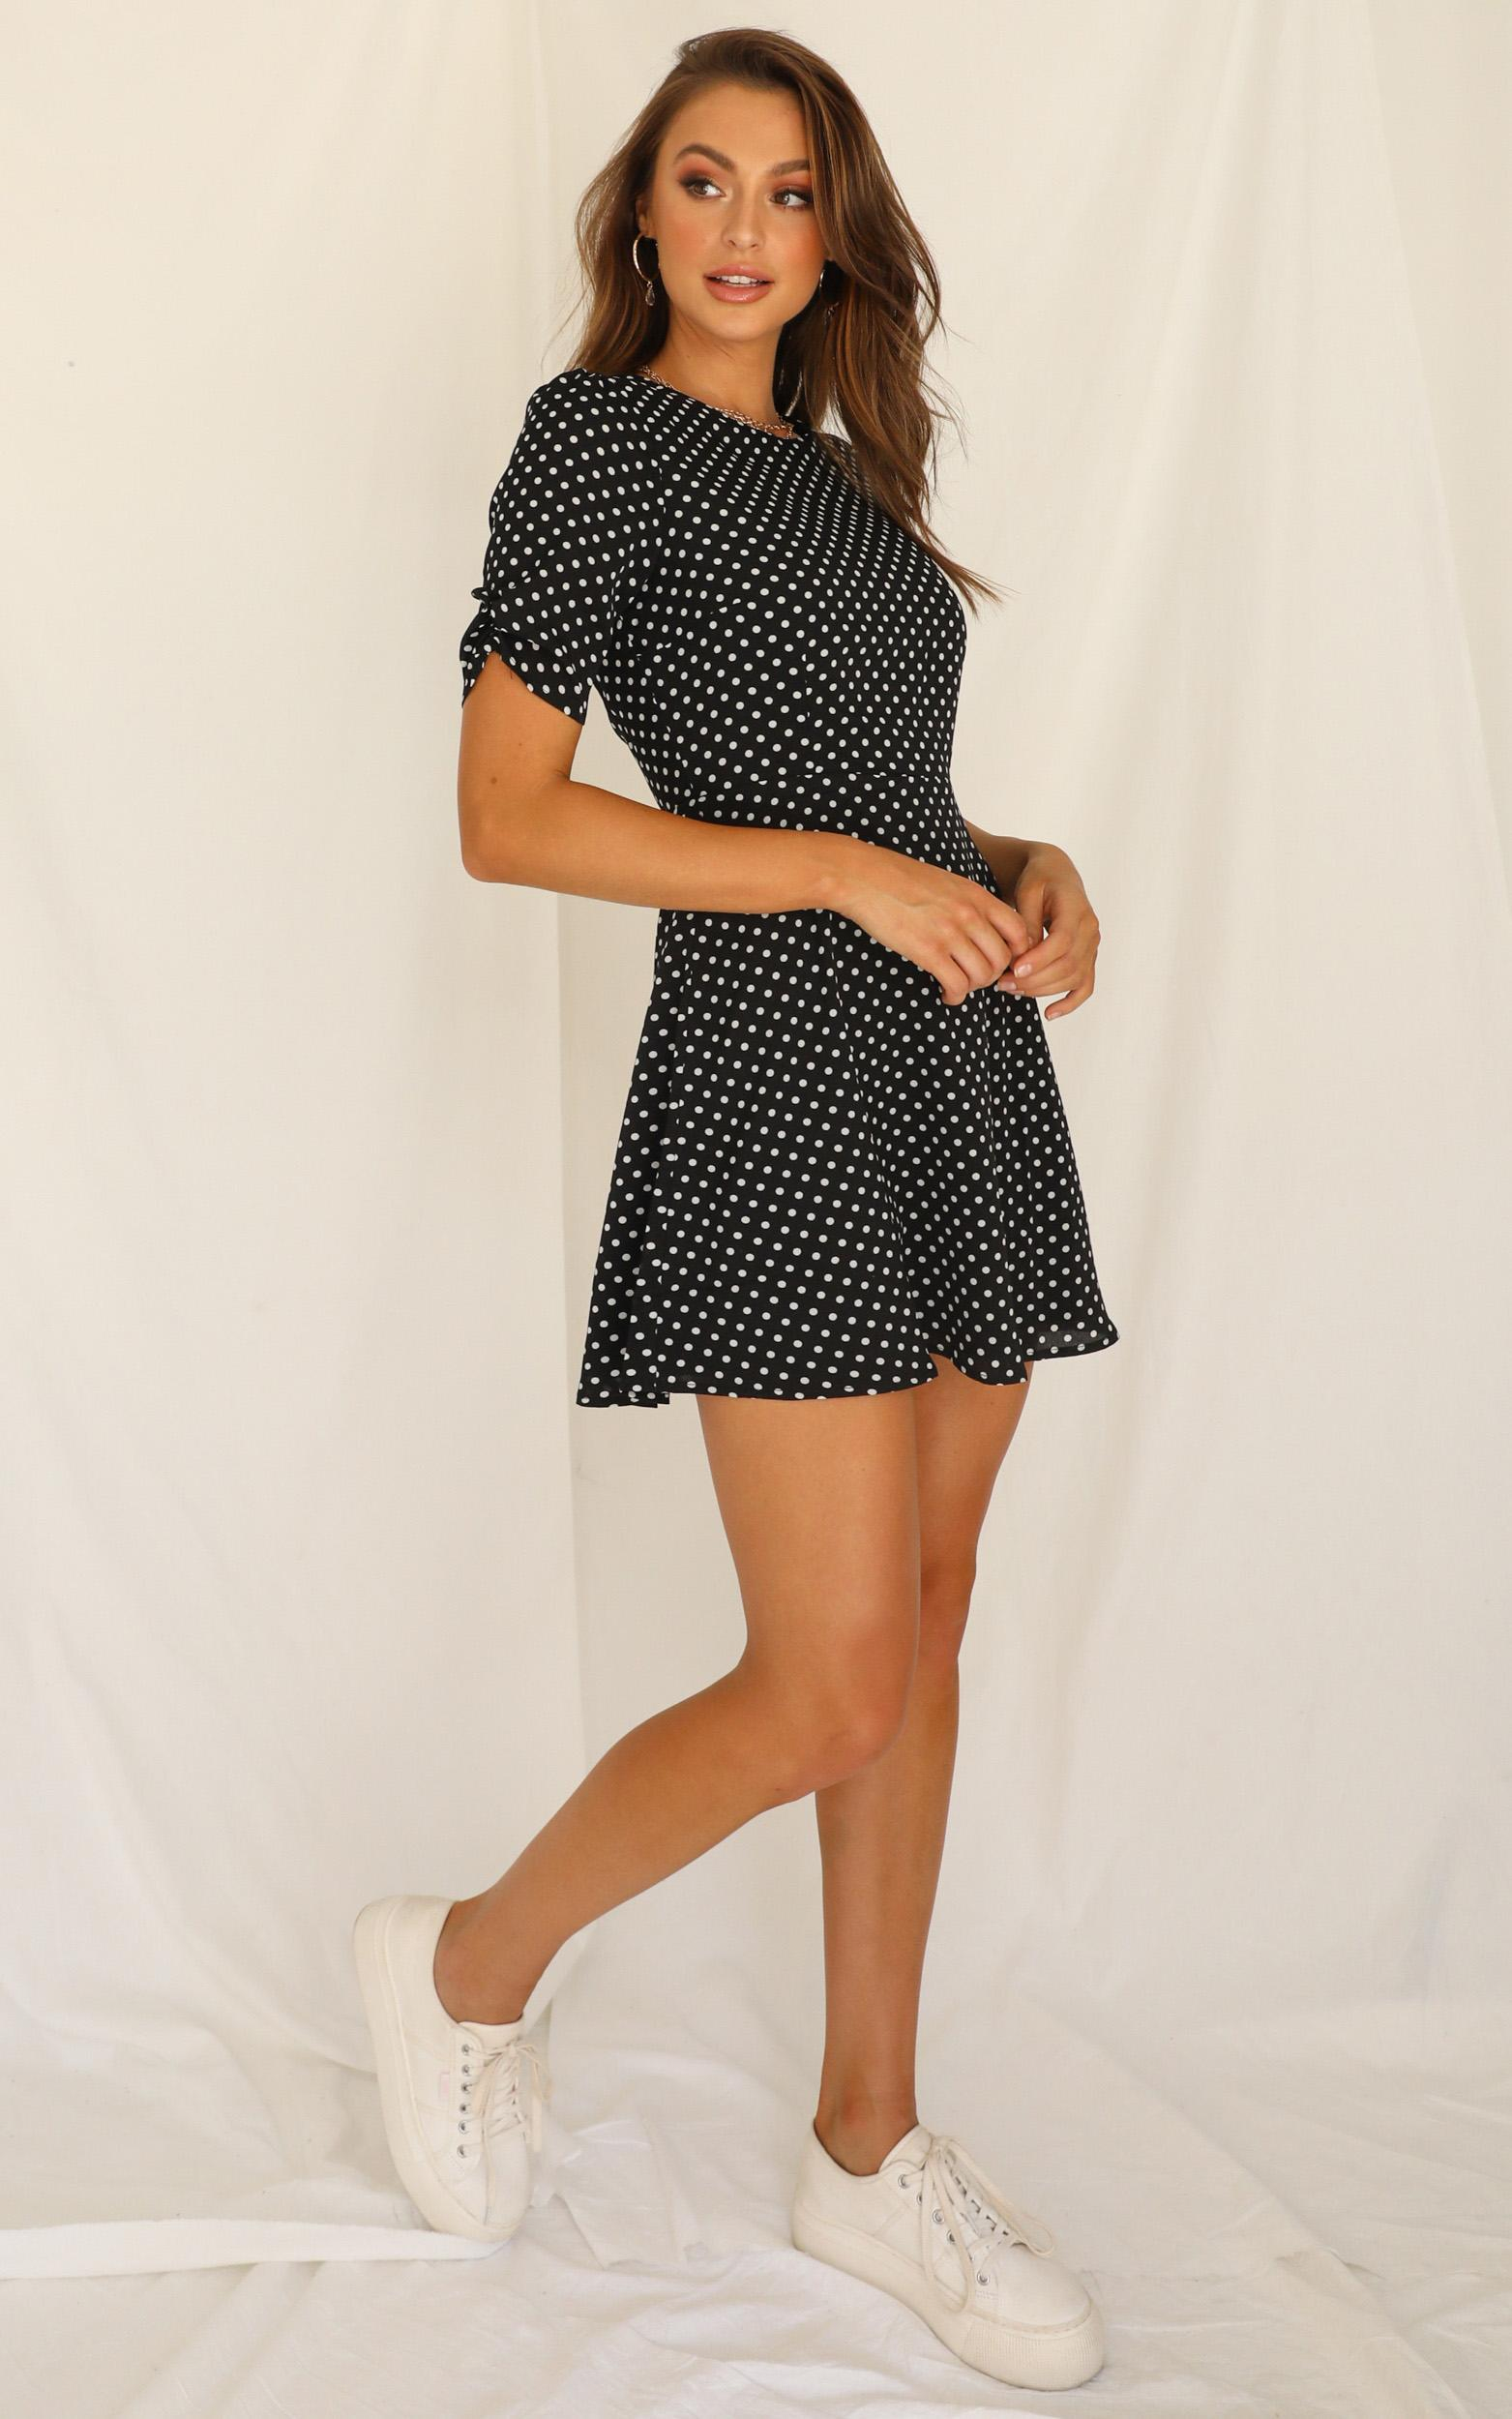 Down To My Core Dress In black spot - 20 (XXXXL), Black, hi-res image number null